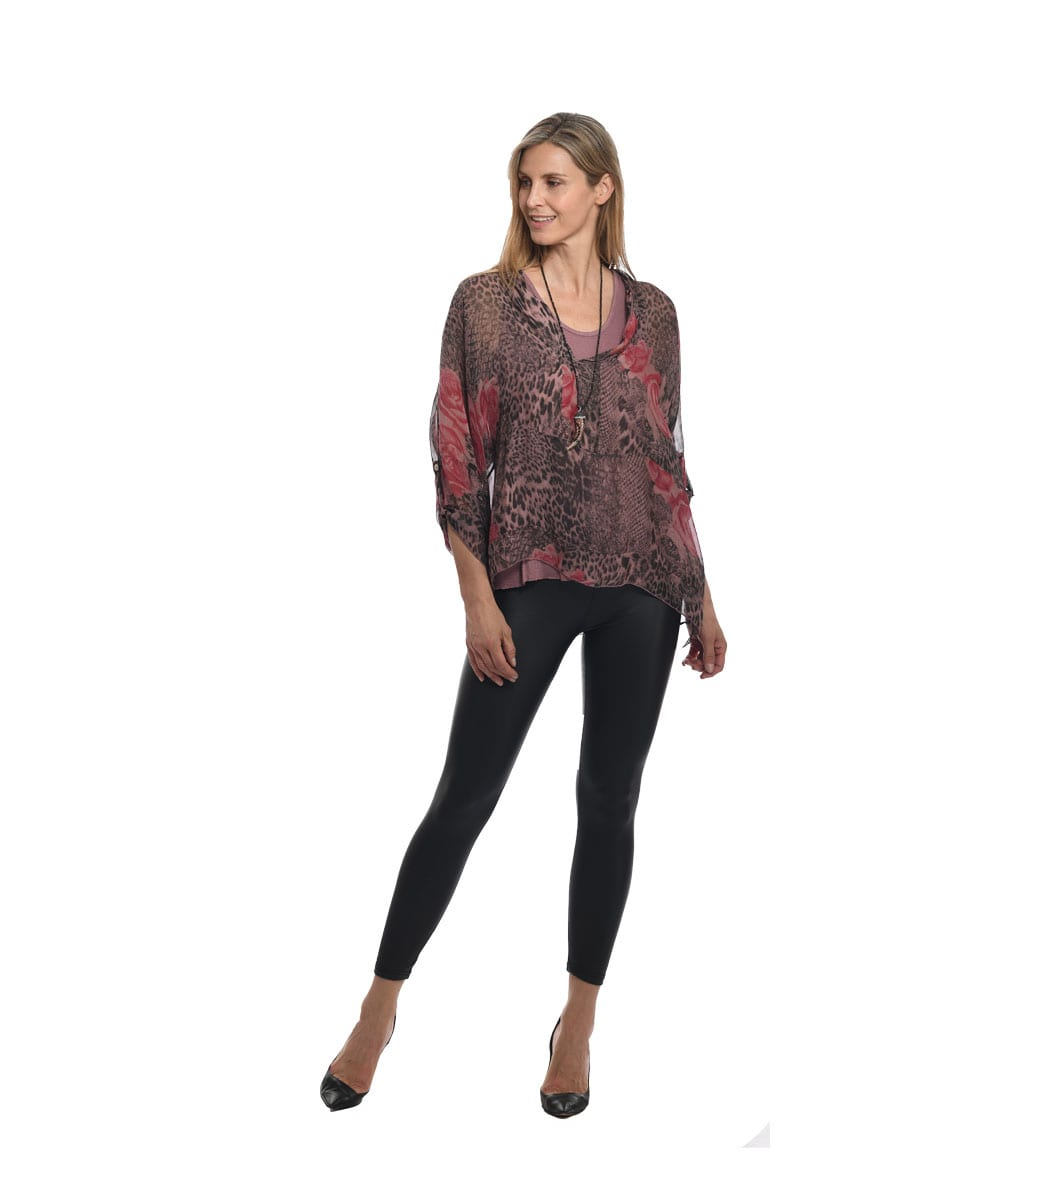 Silky double layered rose animal print top